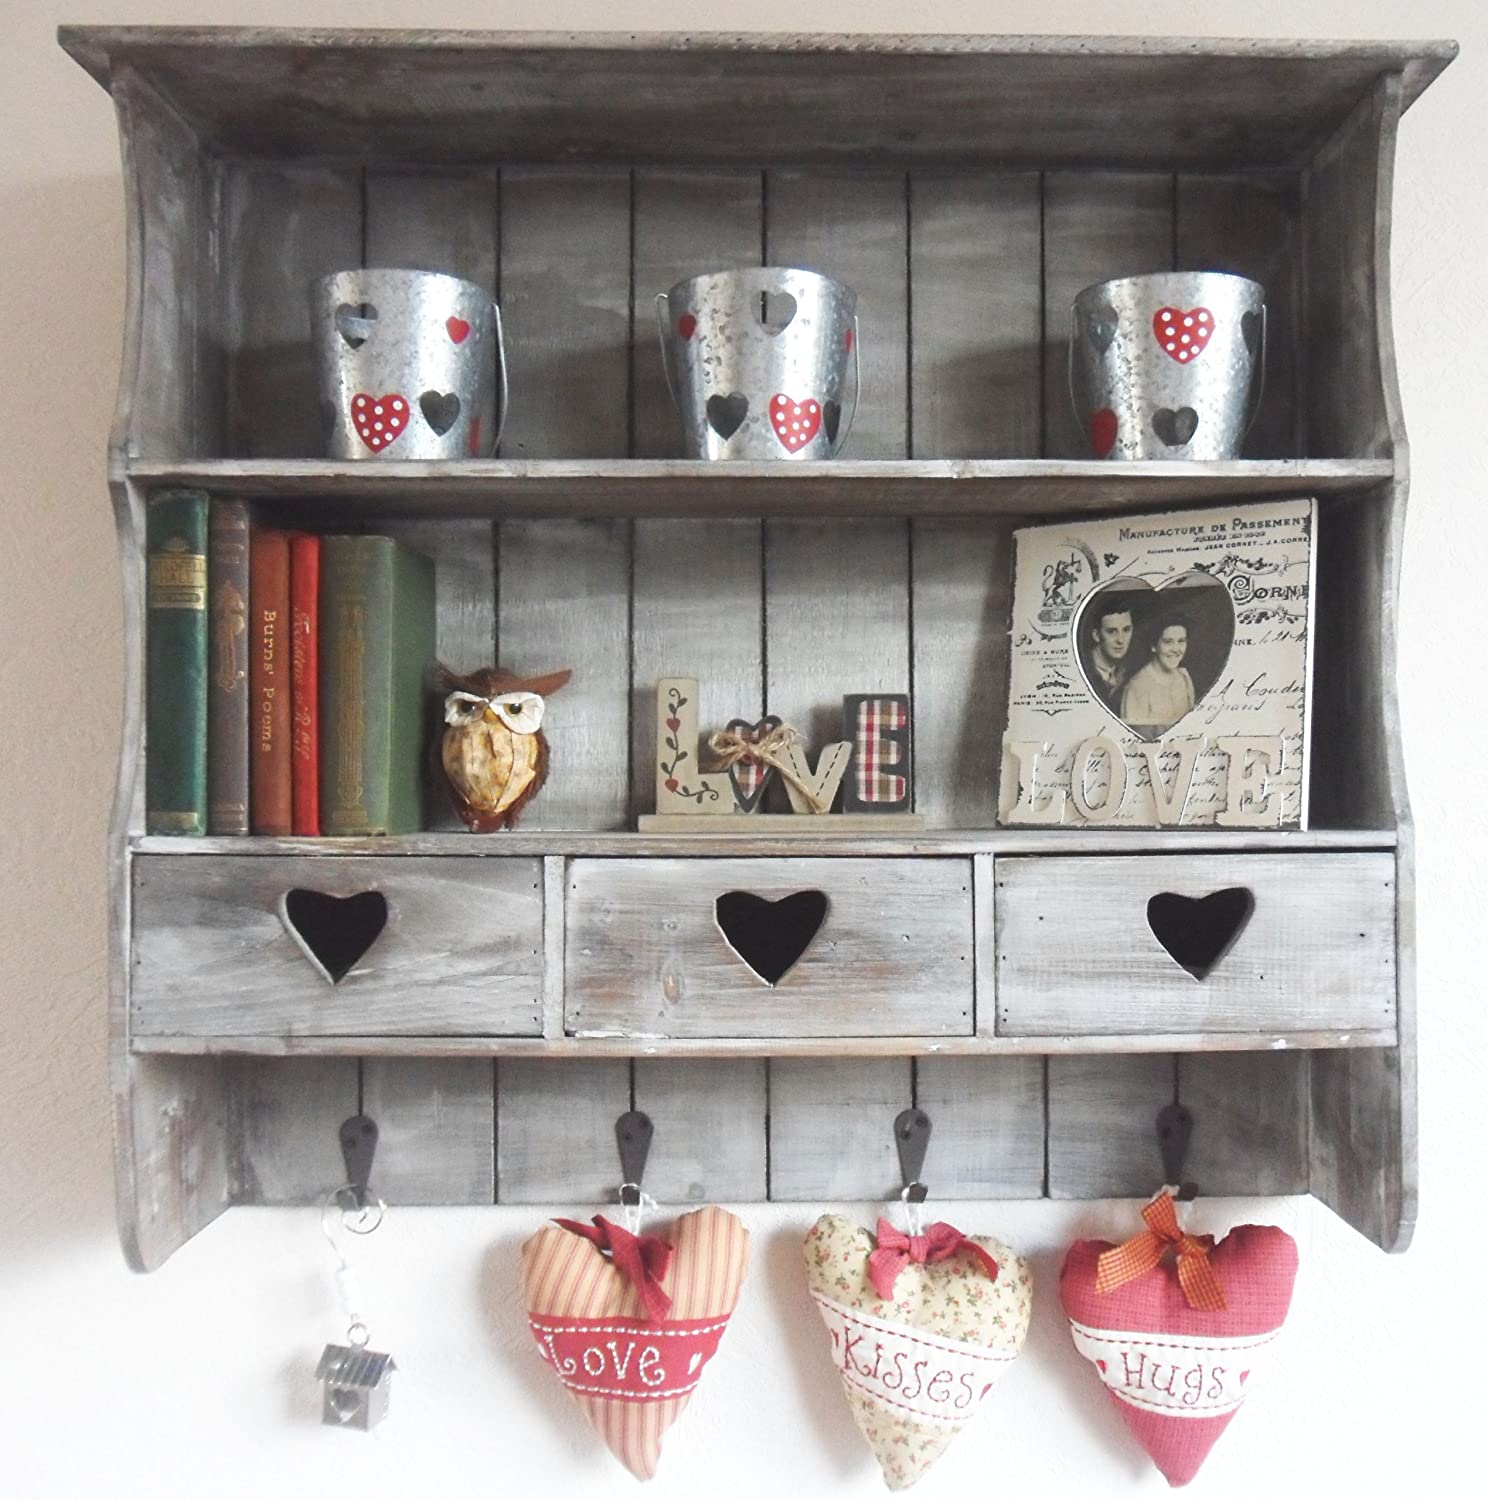 shabby vintage chic reclaimed wood shelving unit with heart